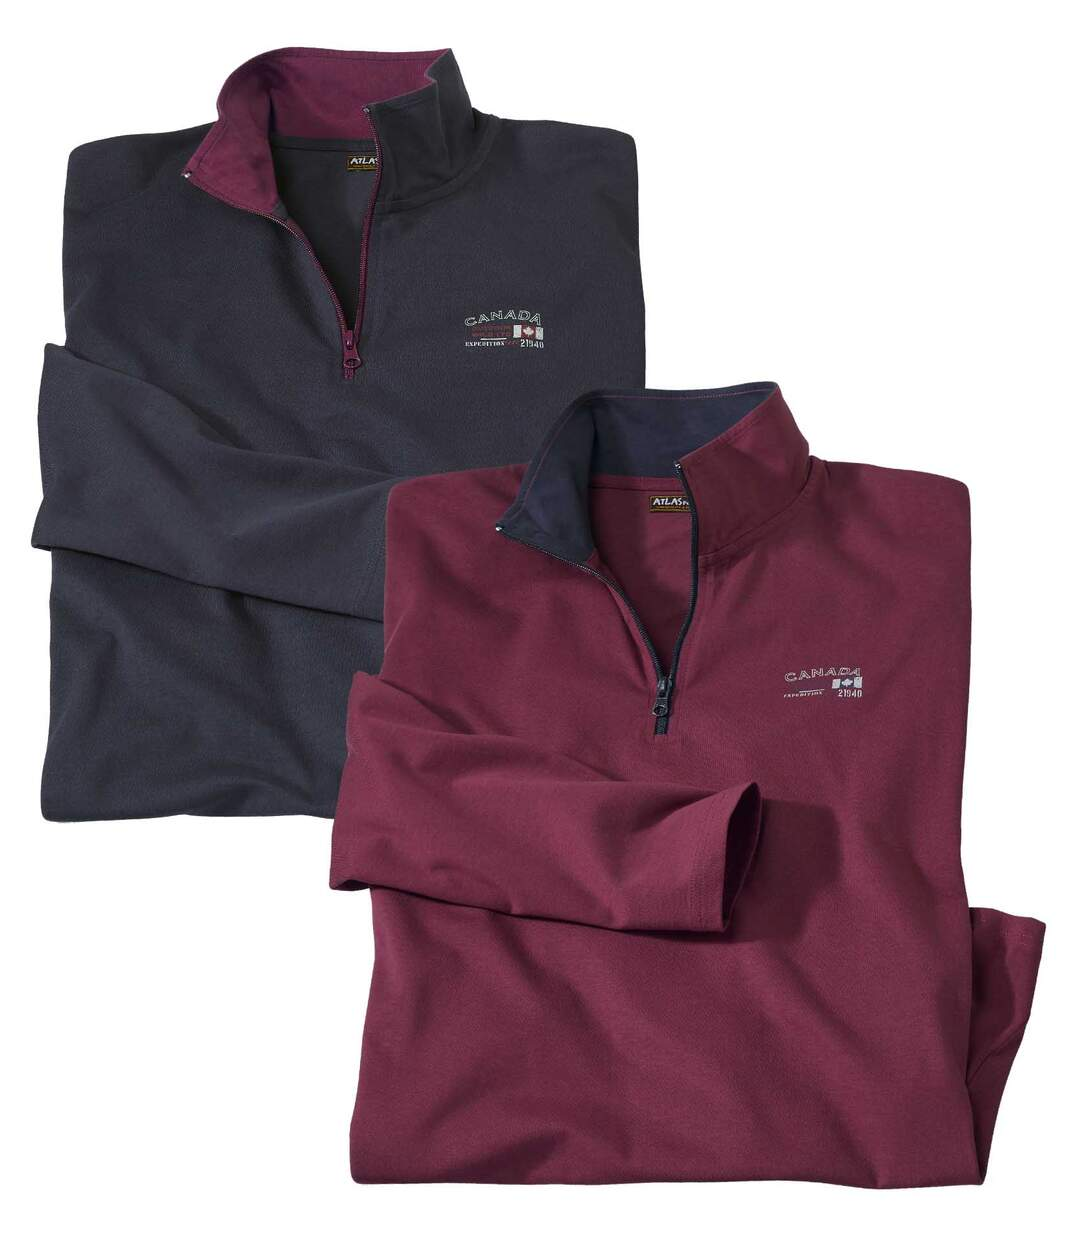 Pack of 2 Men's Zip-Neck Tops - Navy Burgundy